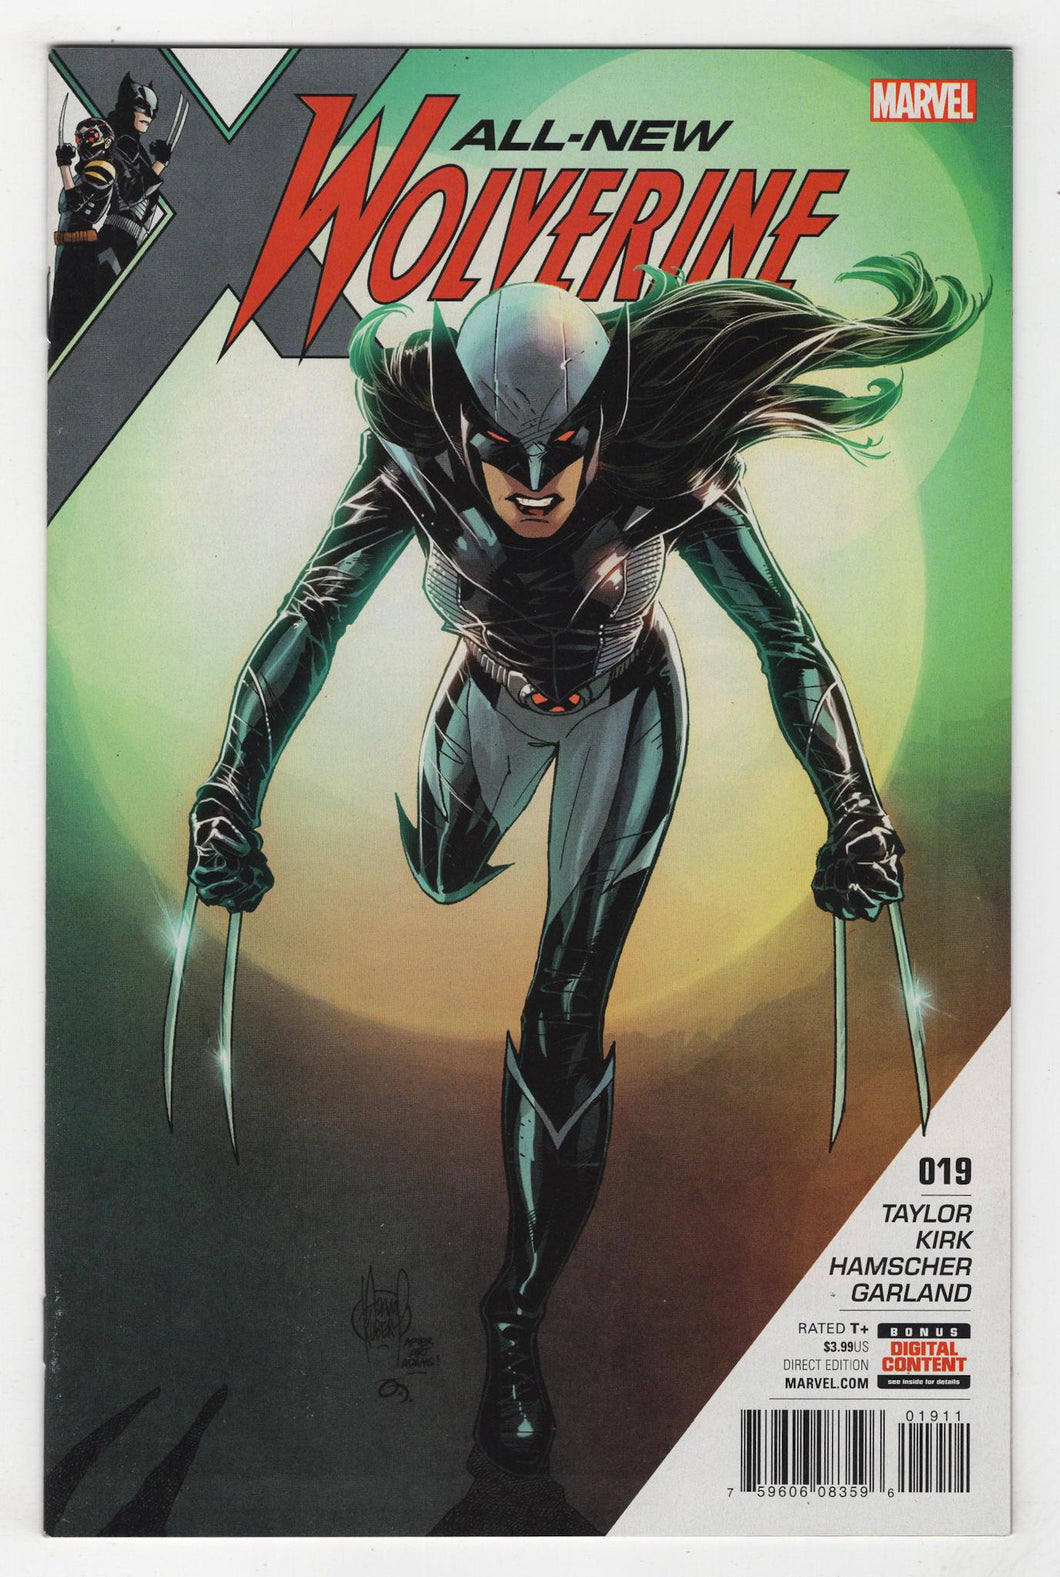 All New Wolverine #19 Cover Front